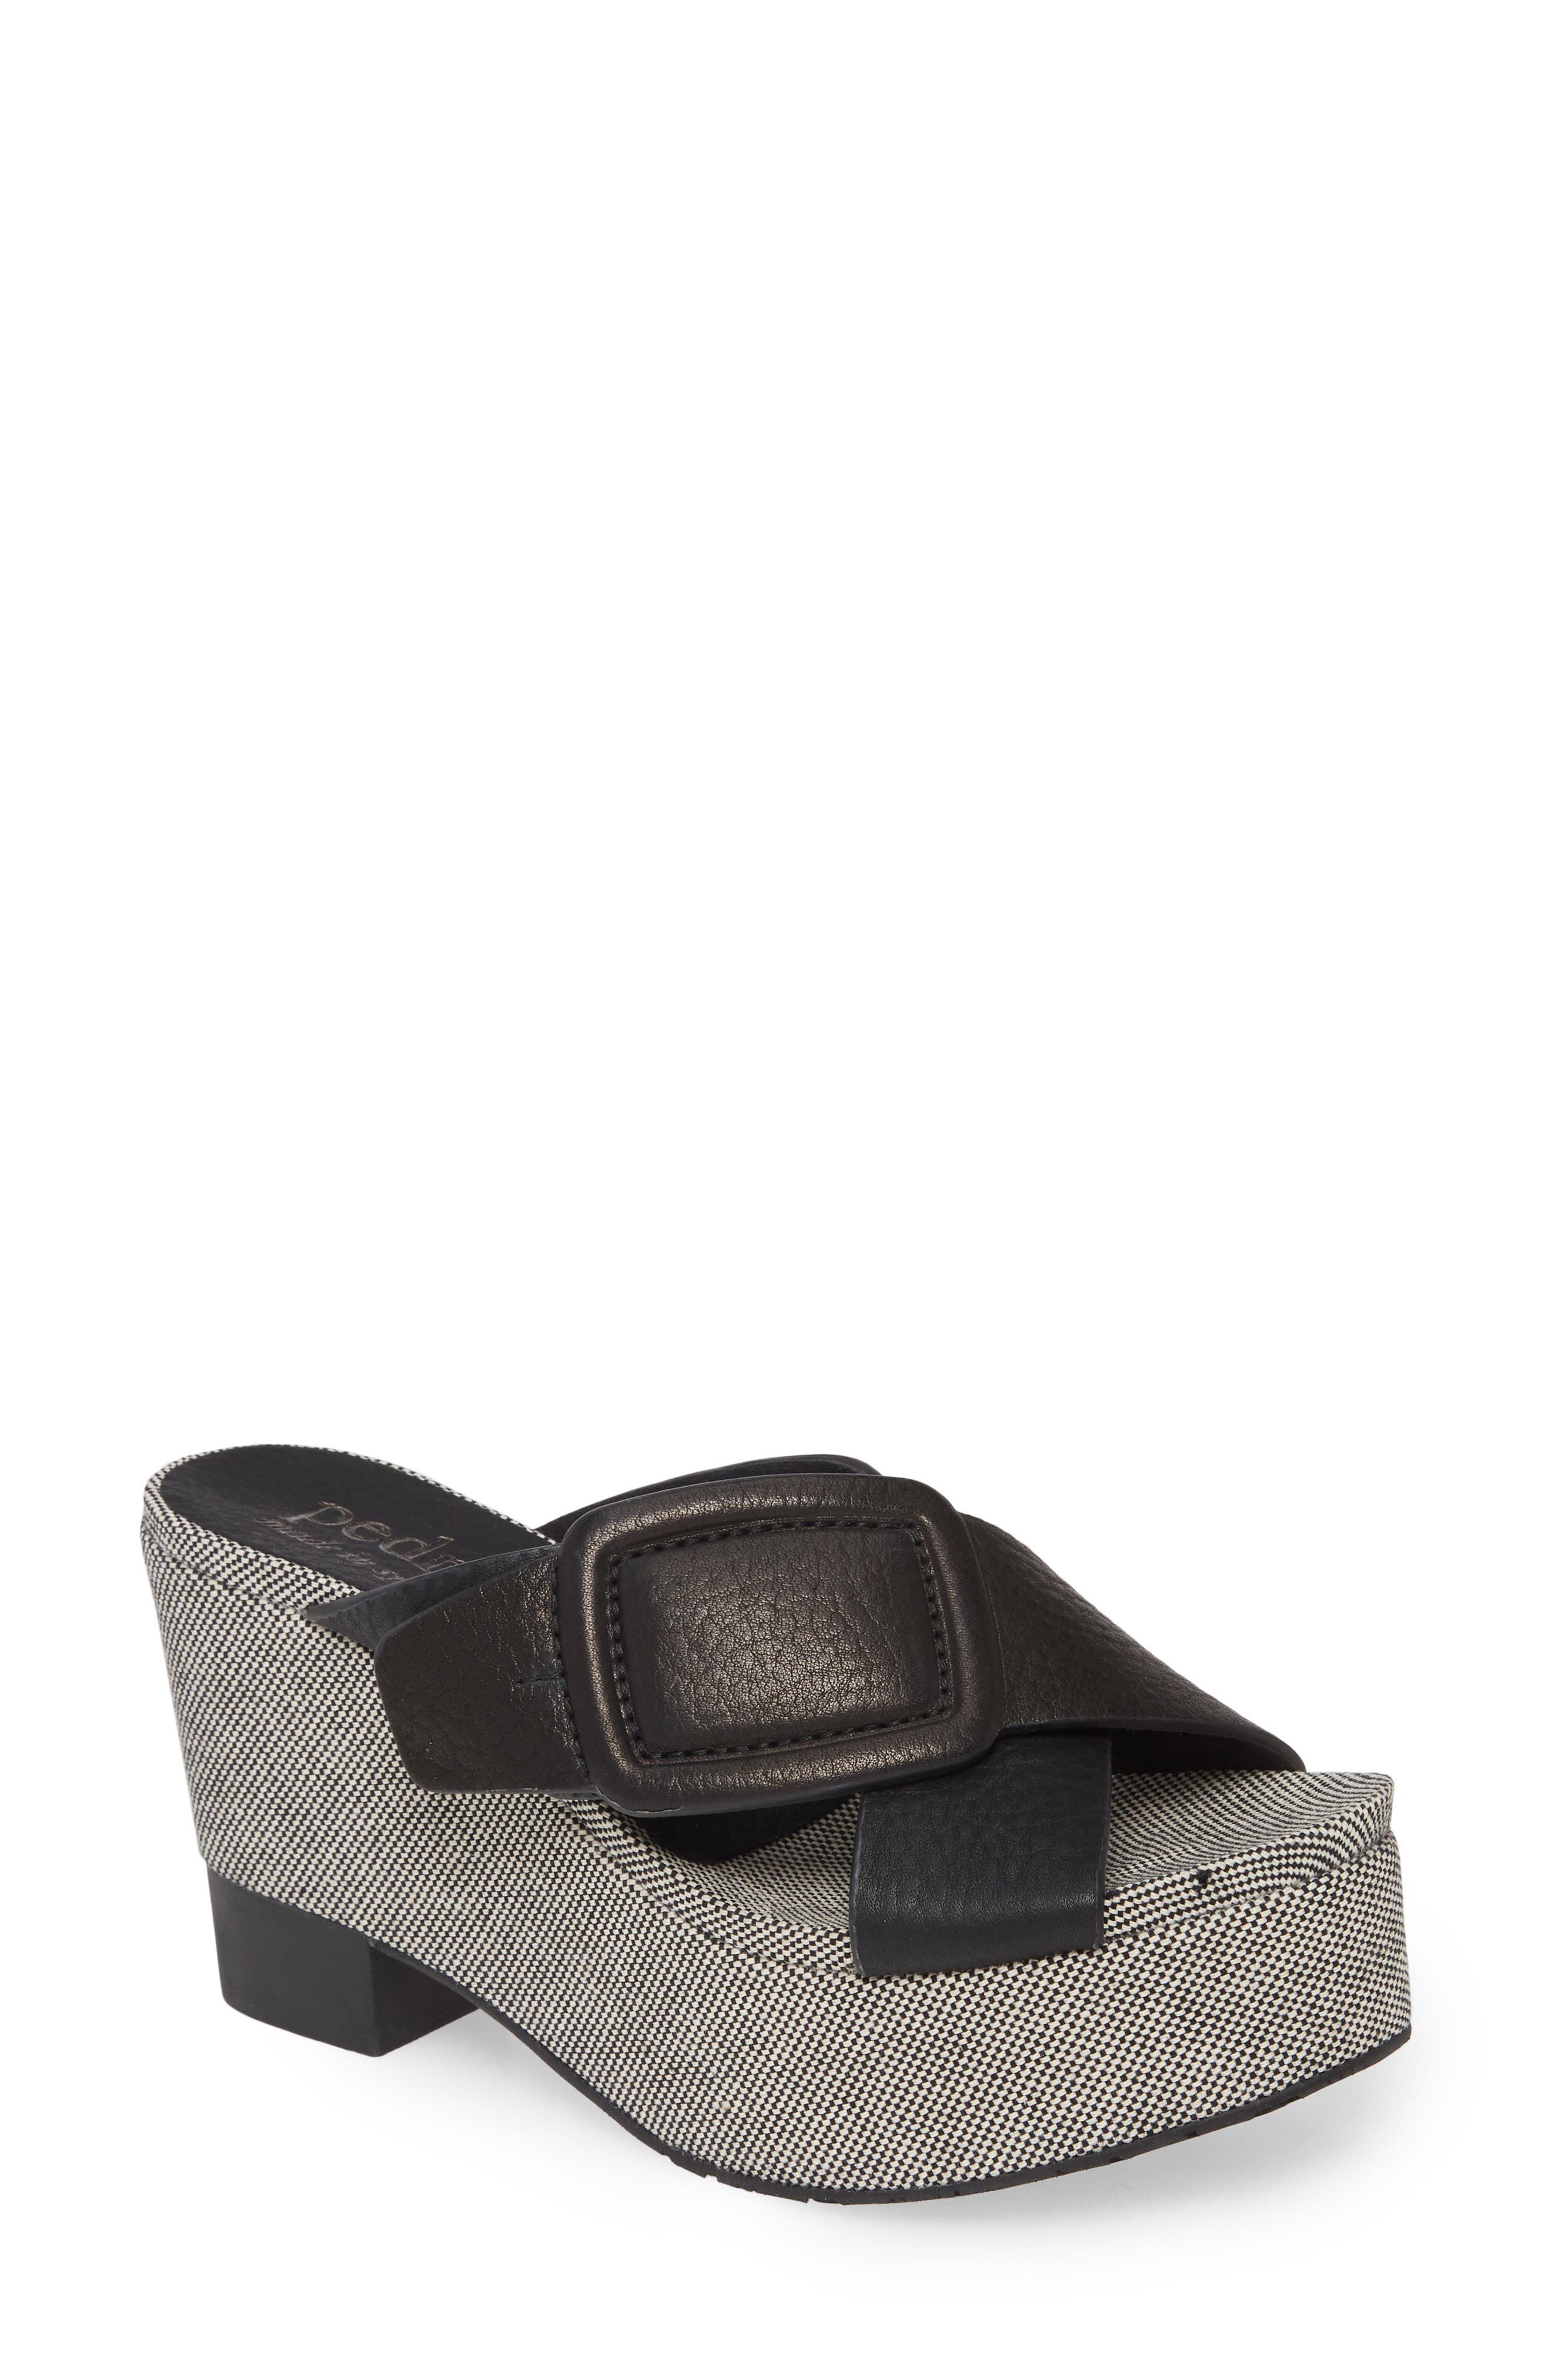 Take on \'90s trends with this lofty platform sandal that boasts wide leather straps and a textured wedge heel. Style Name: Pedro Garcia Donata Platform Sandal (Women). Style Number: 5967887. Available in stores.